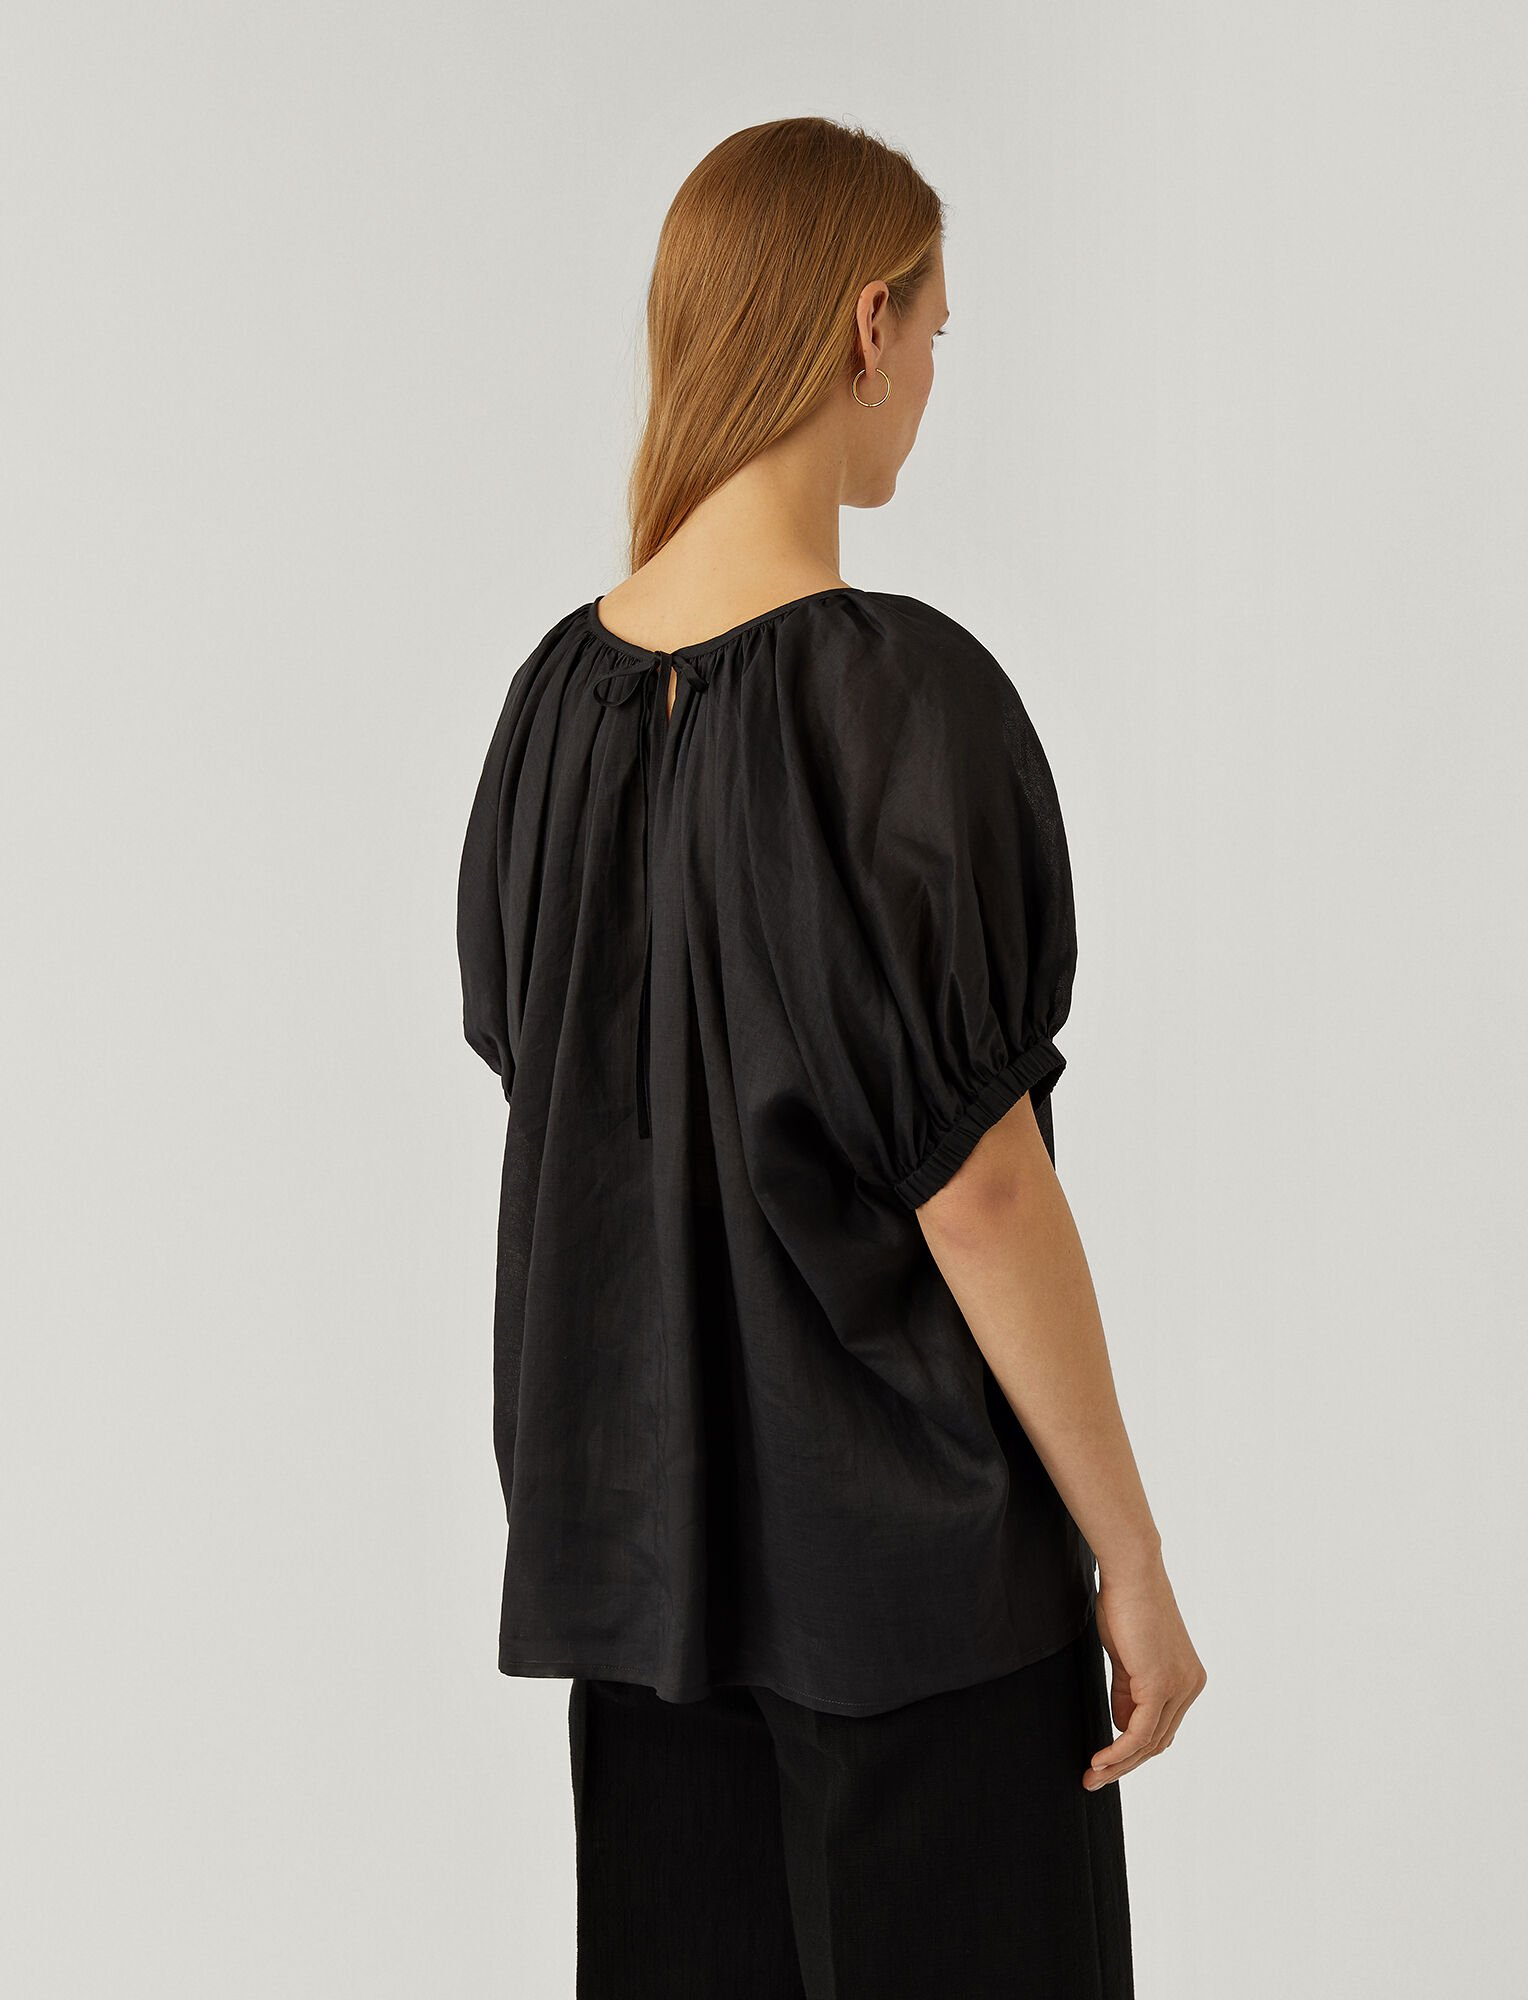 Joseph, Ramie Voile Baidy Blouse, in BLACK